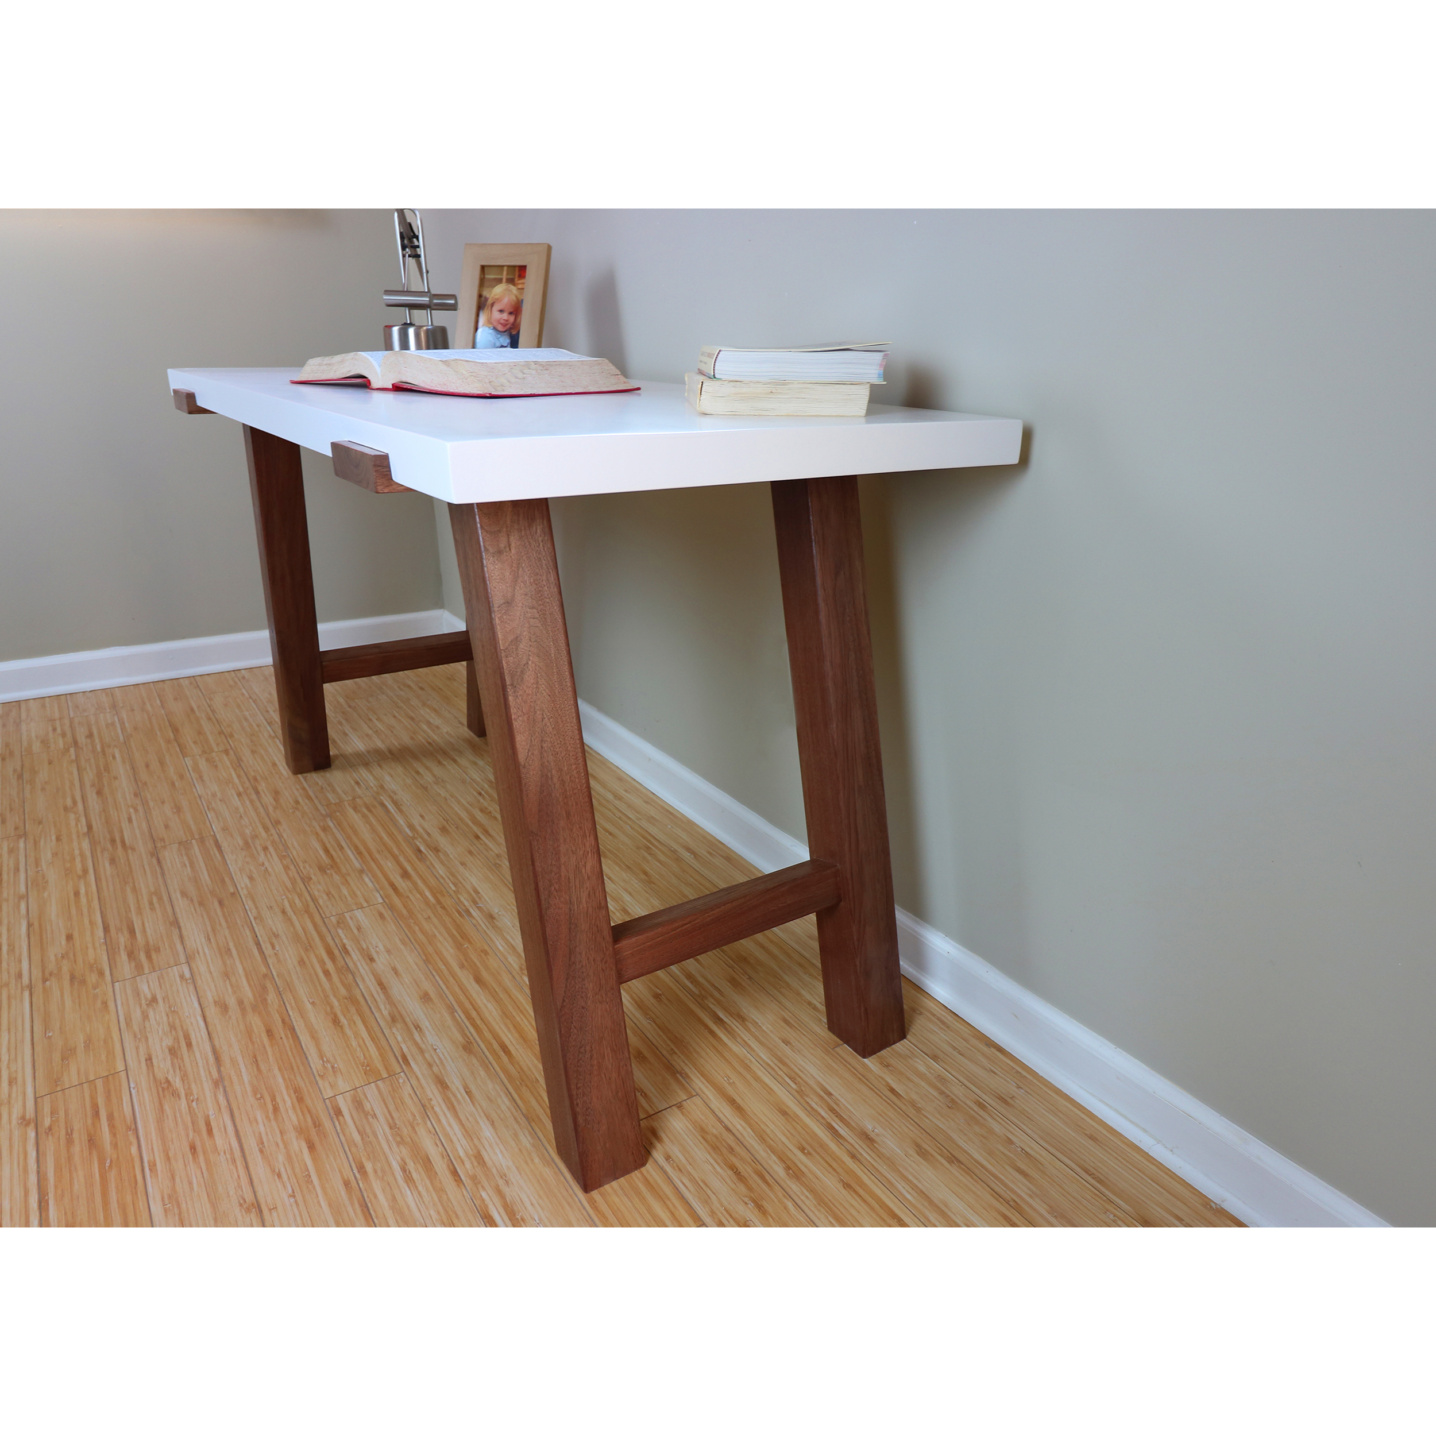 Pulten danish desk with a maple top